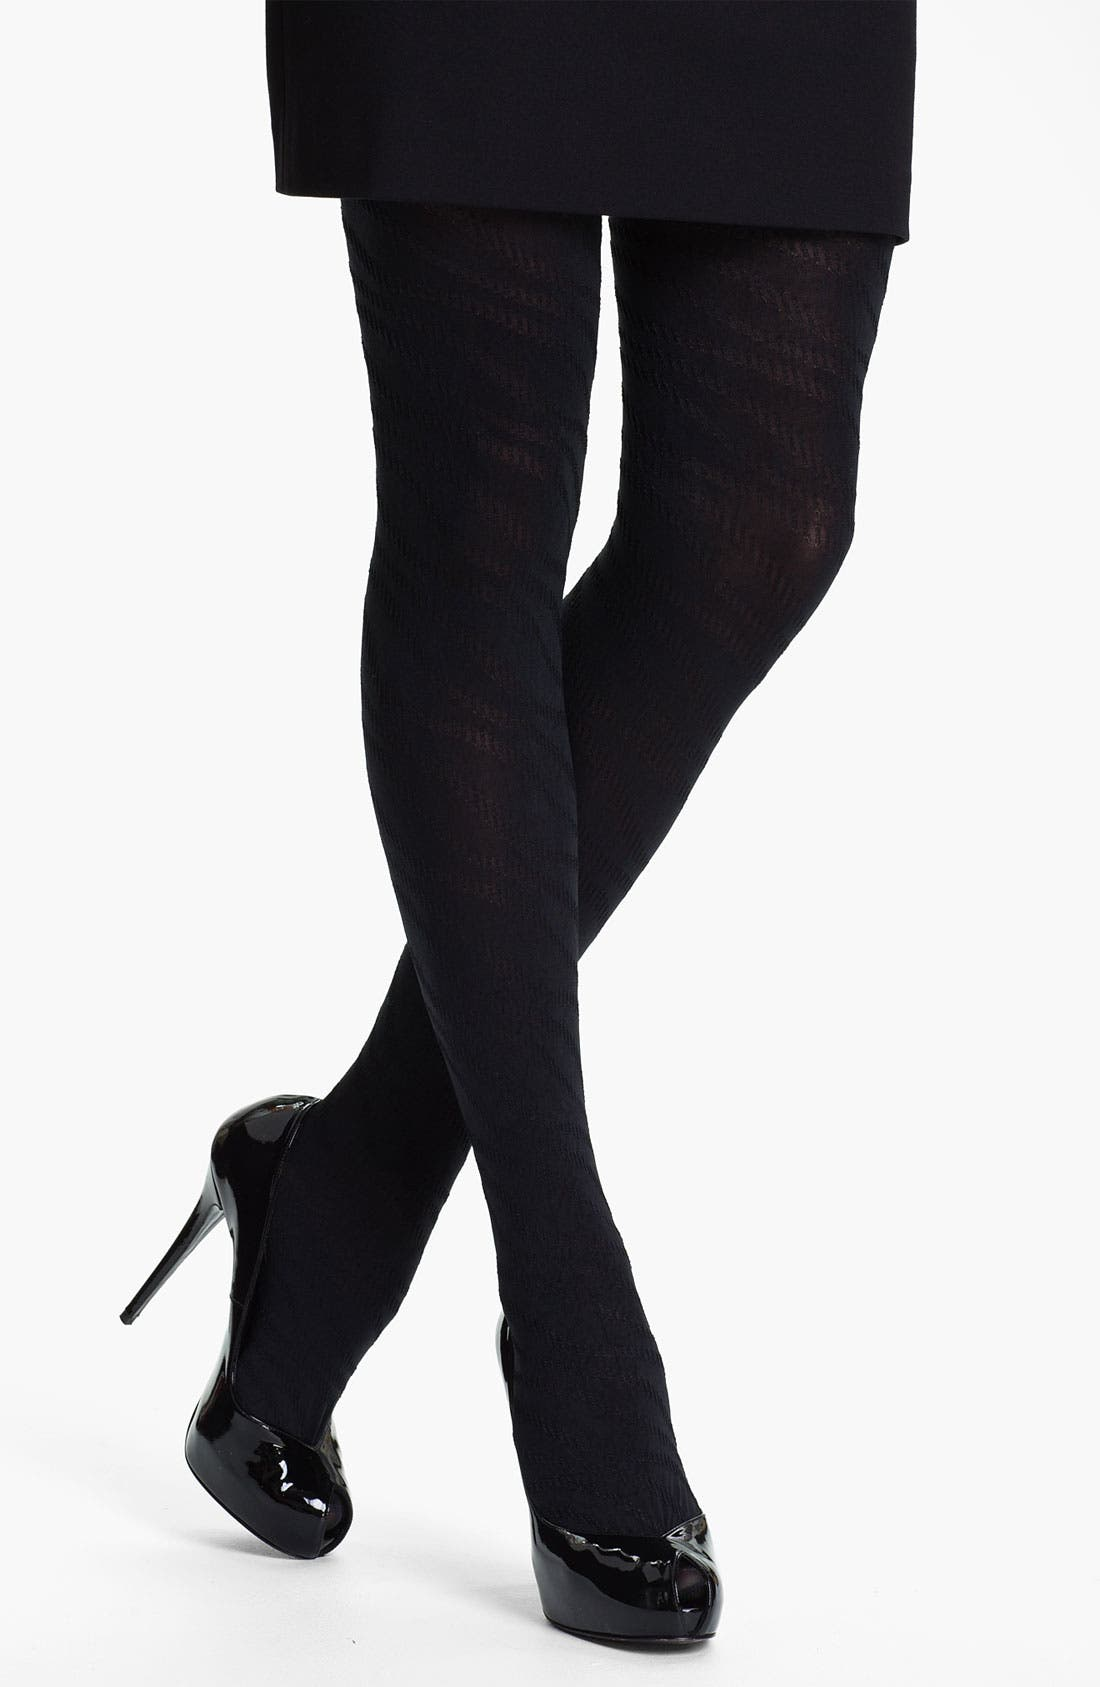 Alternate Image 1 Selected - Calvin Klein 'Whip Stitch Ribbons' Tights